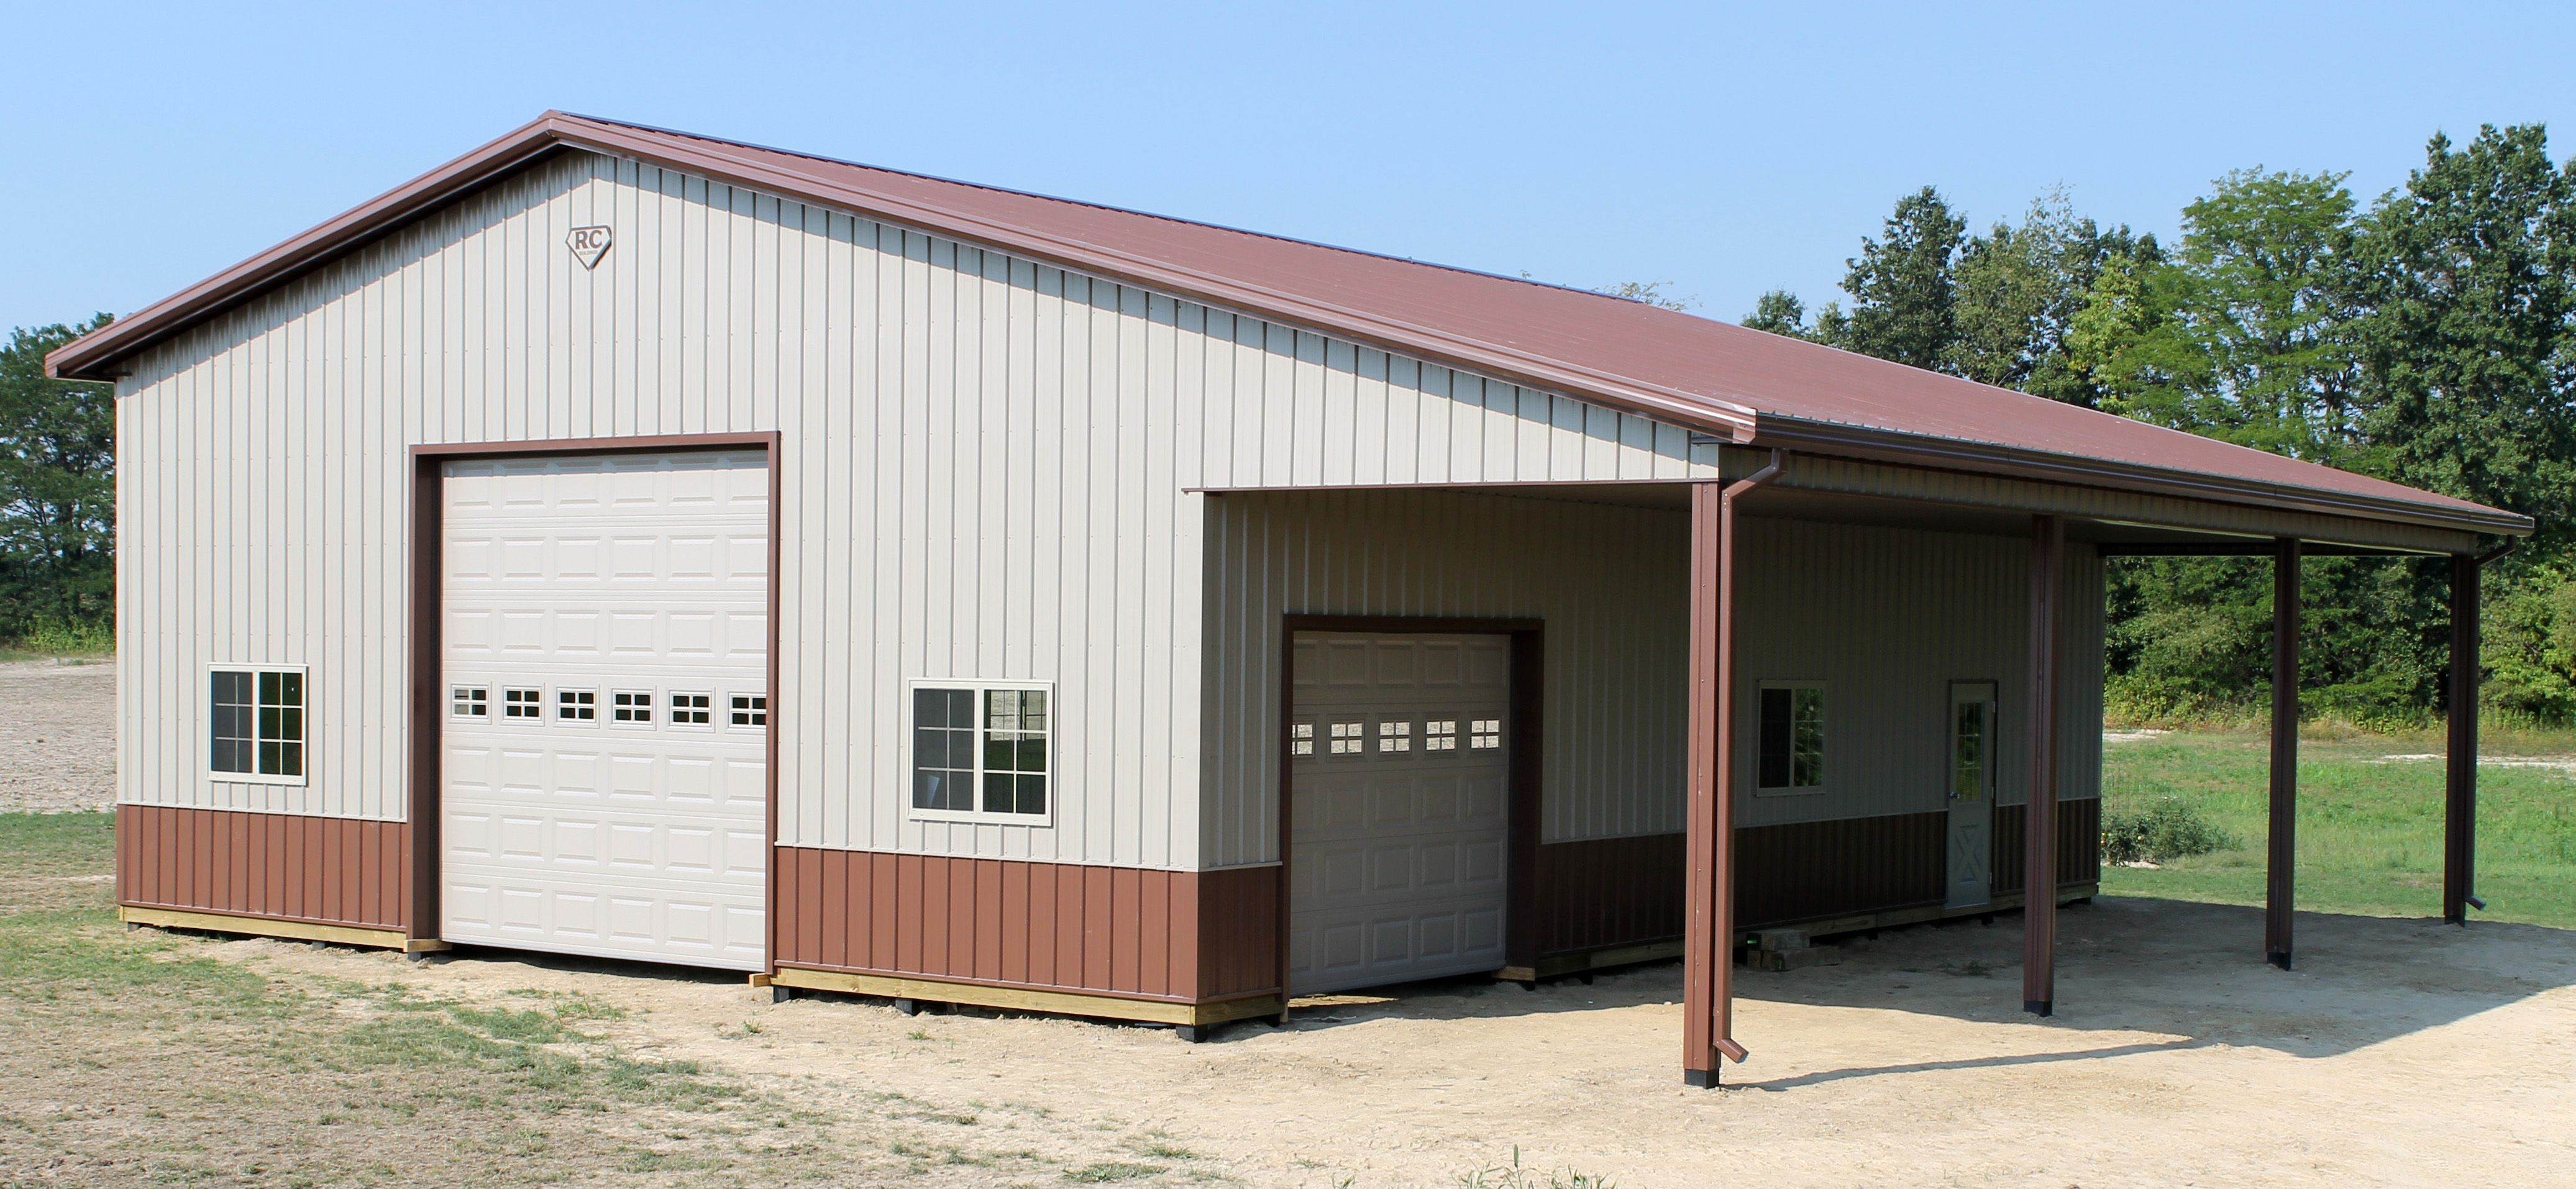 36x48x14 With 12x48 Lean To Metal Buildings Metal Barn House Plans Pole Barn Homes